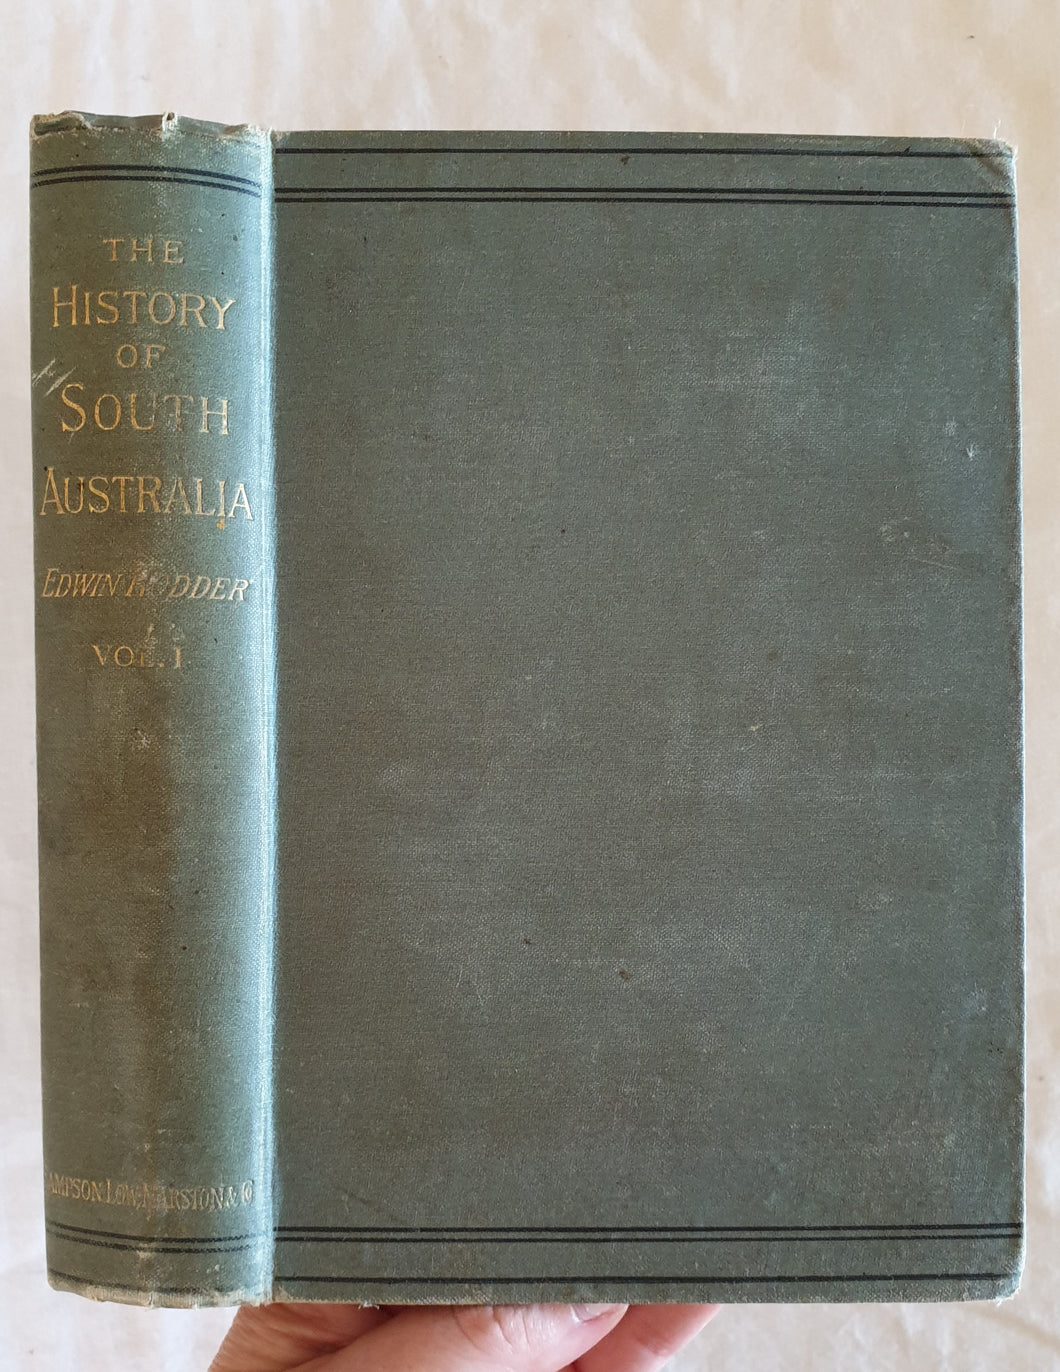 The History of South Australia by Edwin Hodder